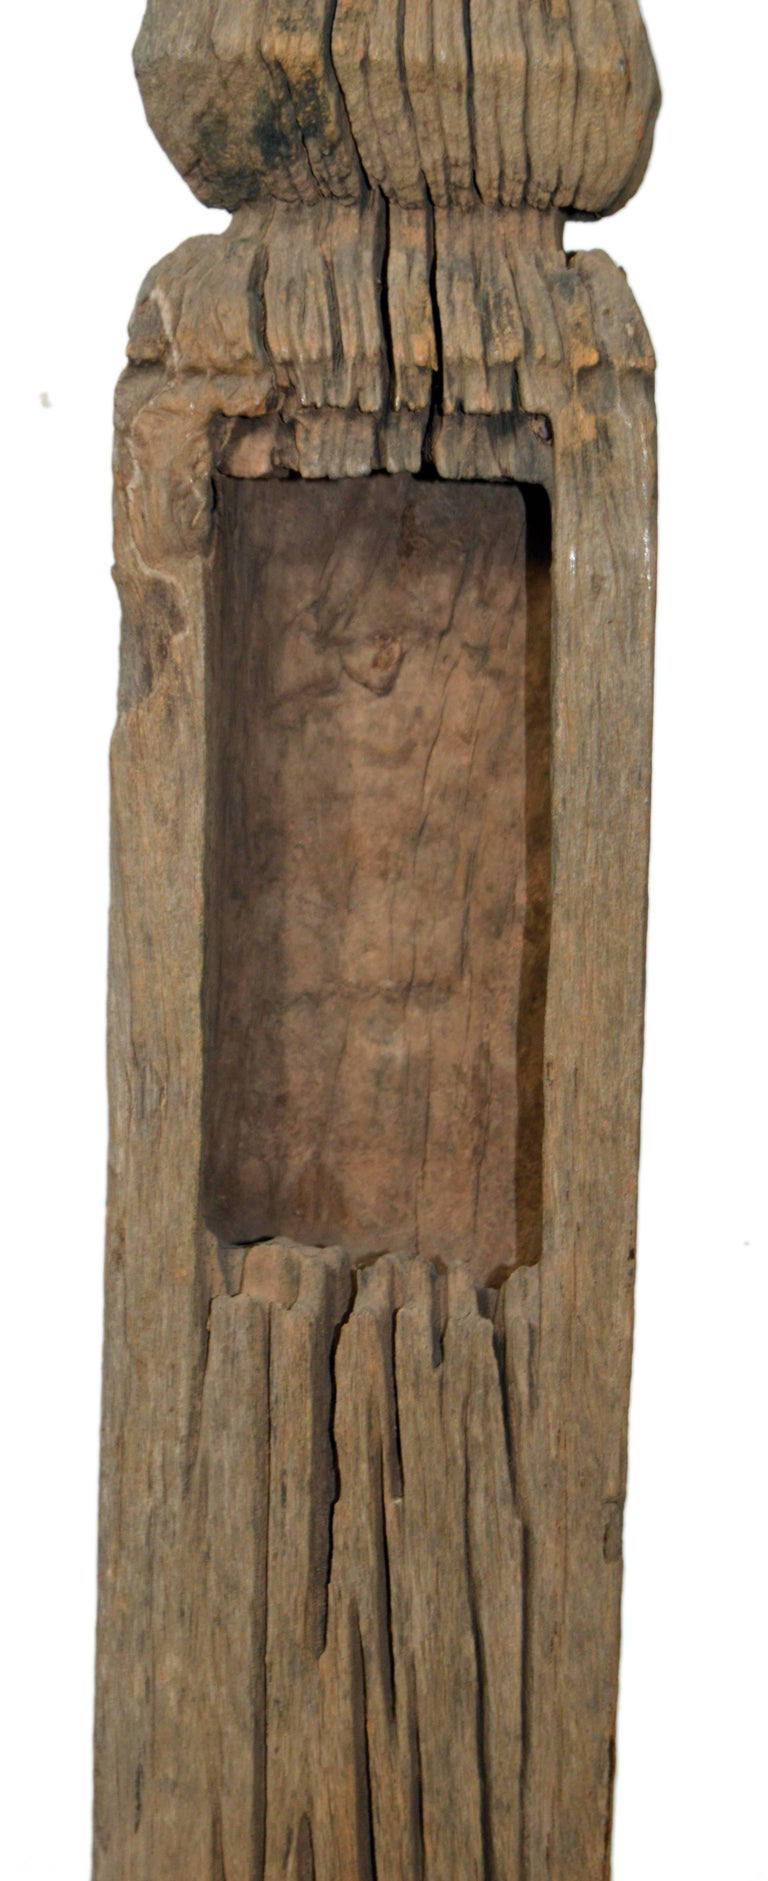 Hand-Carved Thai 19th Century Sculptural Architectural Fragment Possibly from a Spirit House For Sale